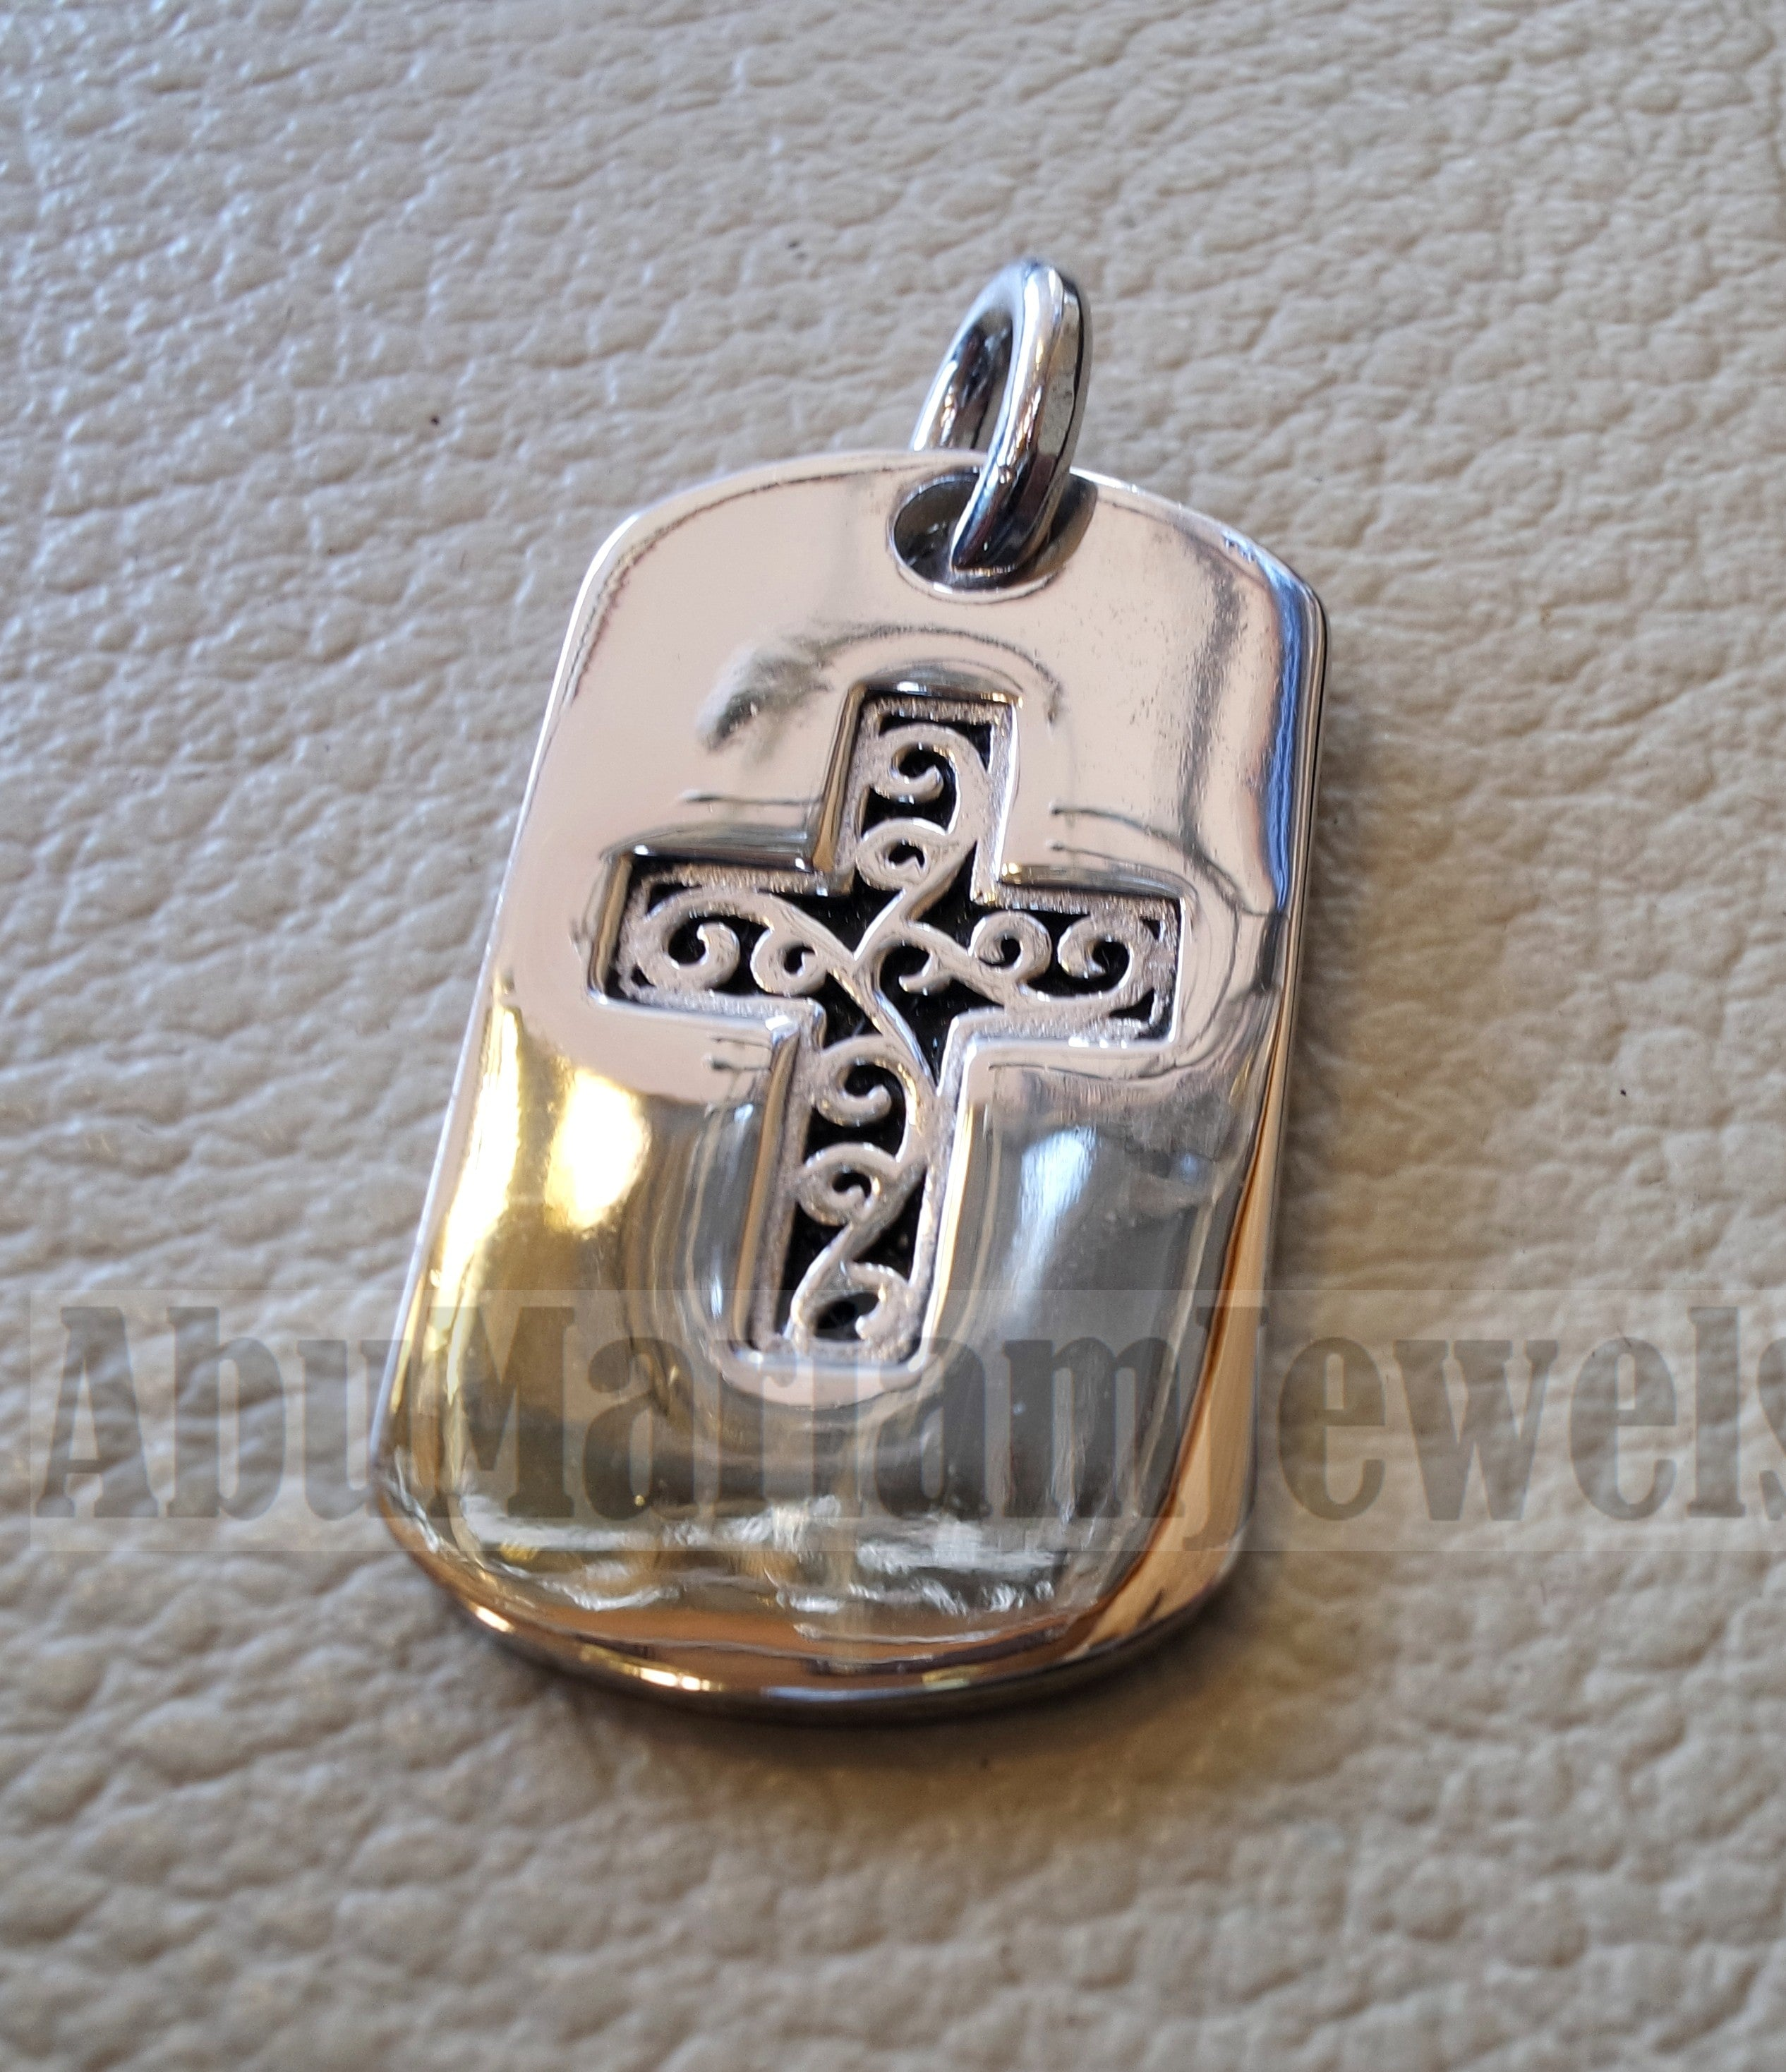 Heavy cross pendant sterling silver 925 middle eastern style religious jewelry christianity vintage handmade heavy express shipping